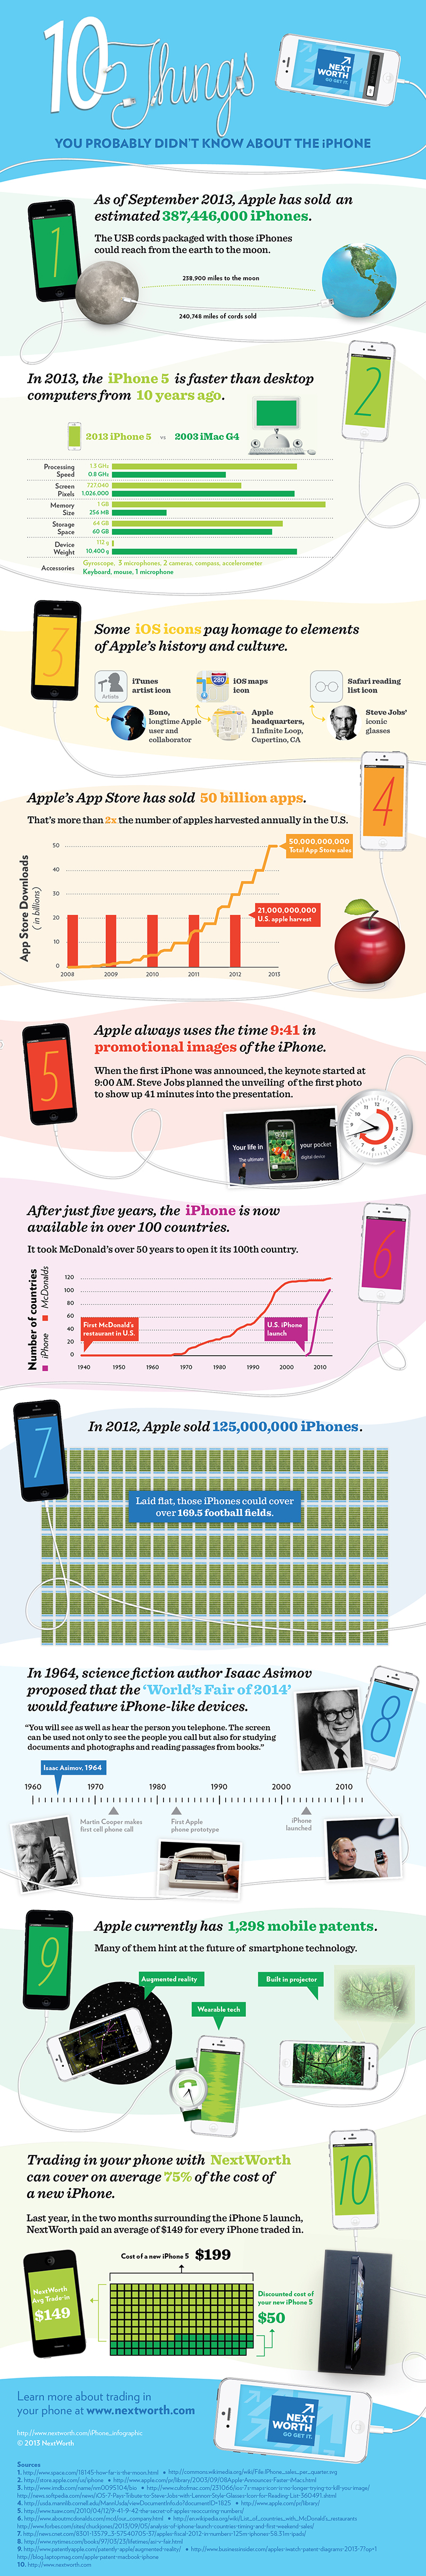 10 Things you didn't know about Iphone